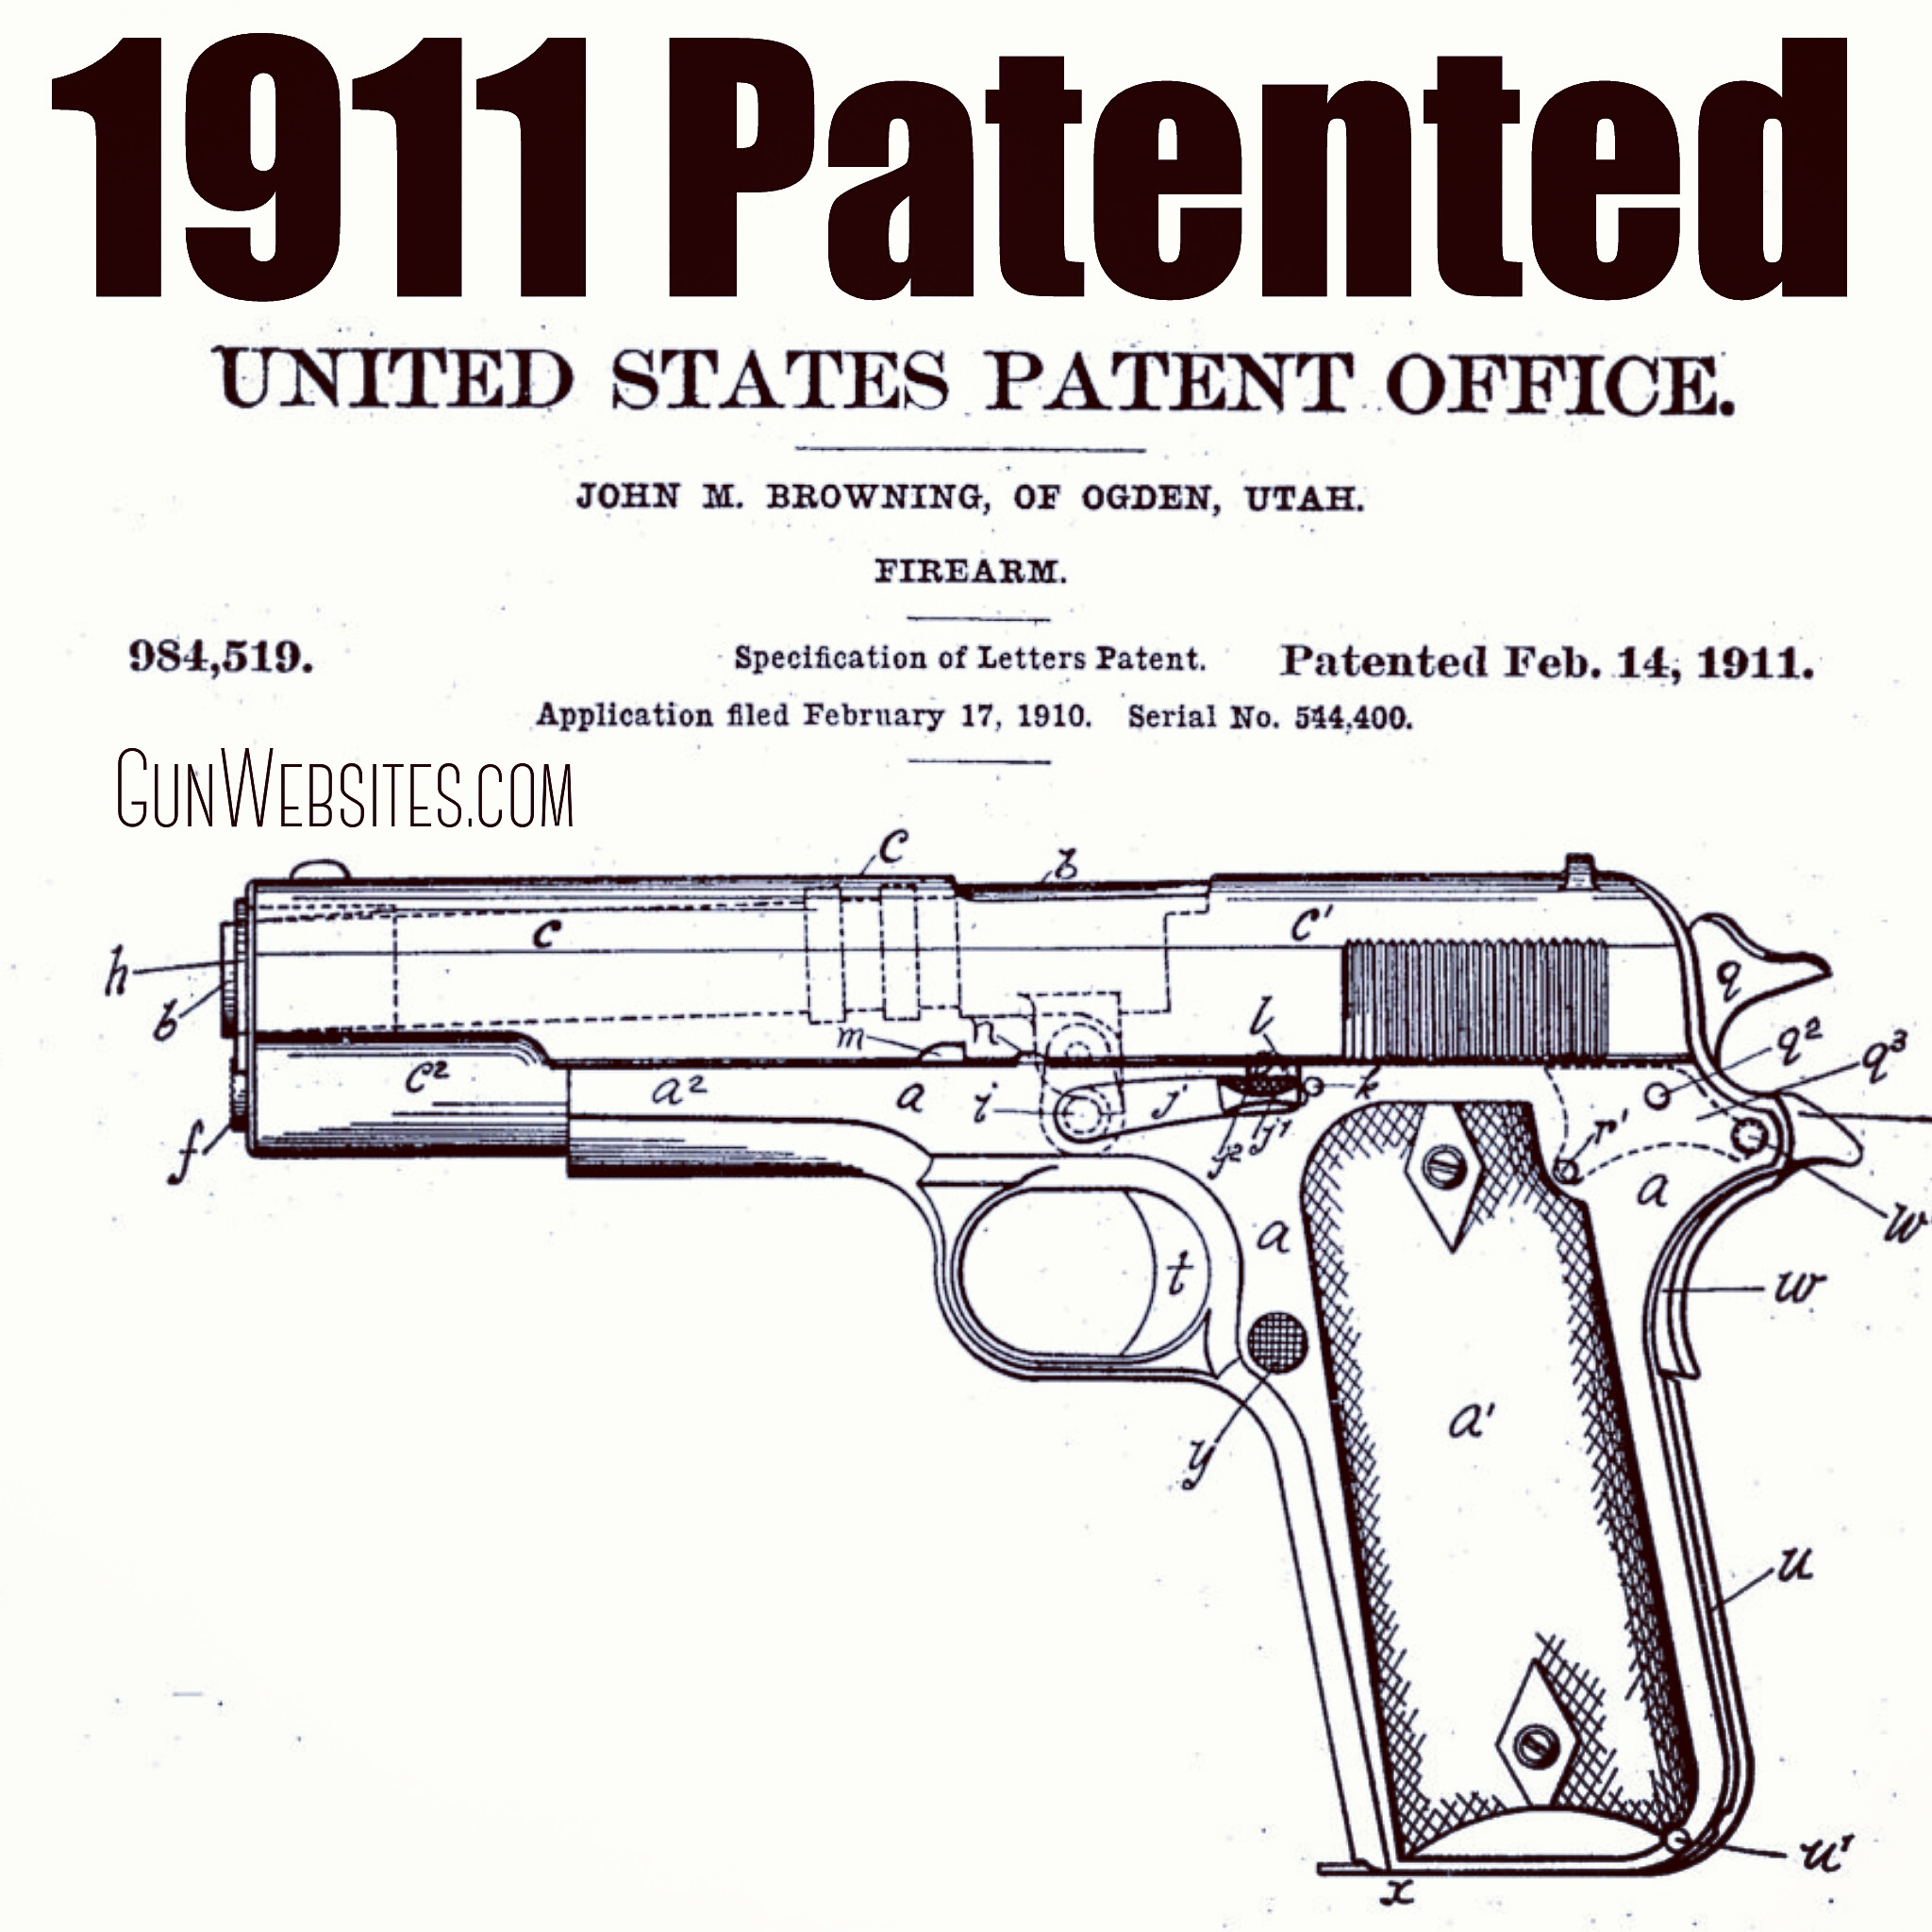 The 1911 was formally adopted by the Army on March 29, 1911